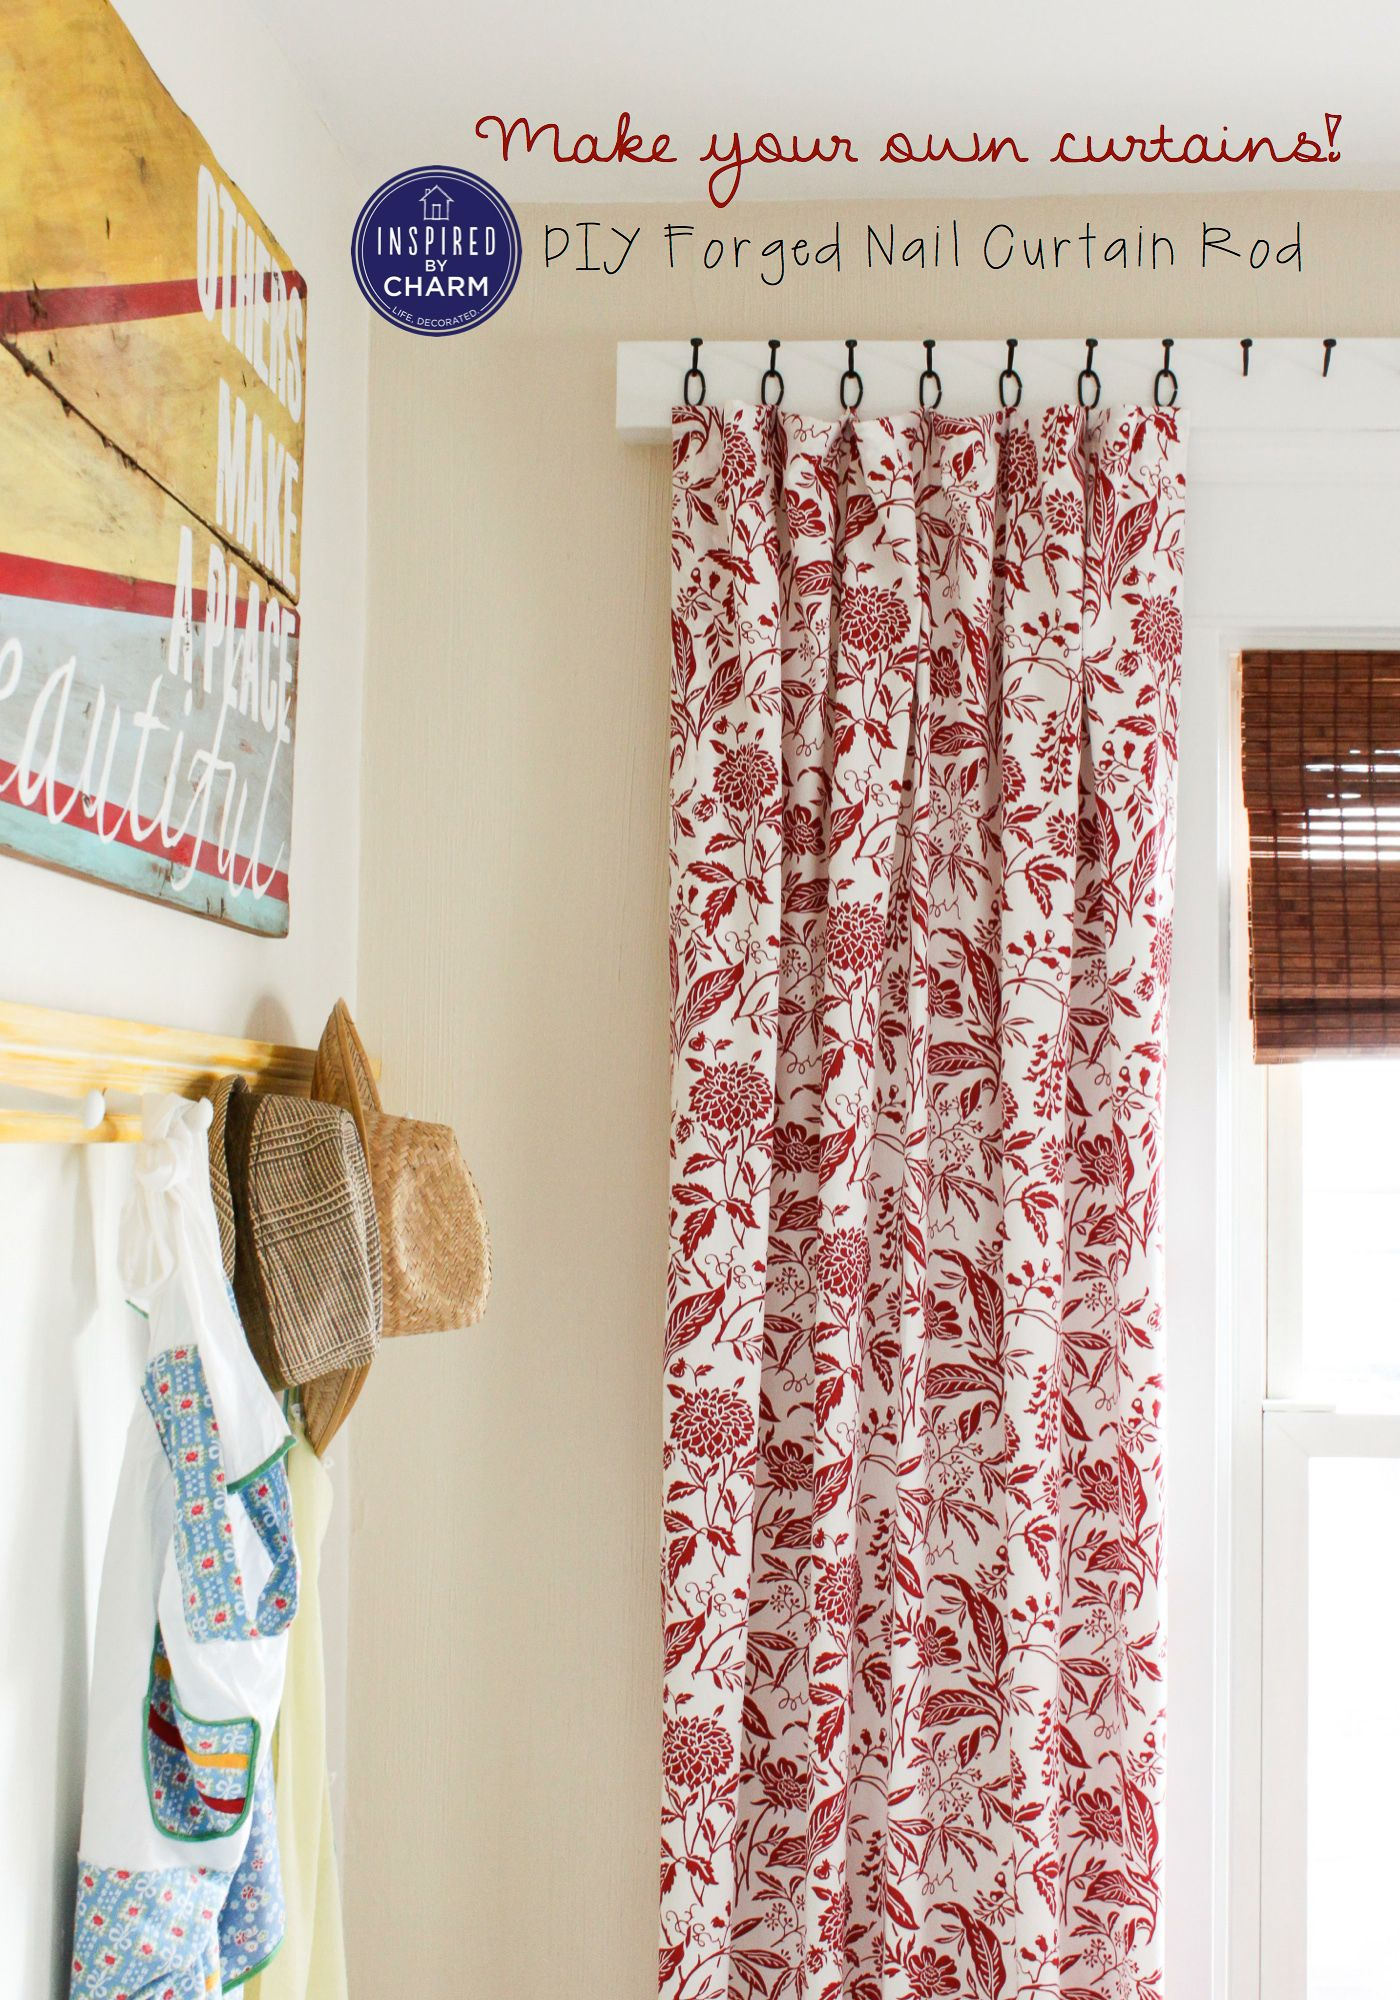 Diy Curtains And Forged Nail Rod This Post Is Just Brilliant So Many Clever Ideas How To Create A Curtai Diy Curtains Diy Window Treatments Home Decor